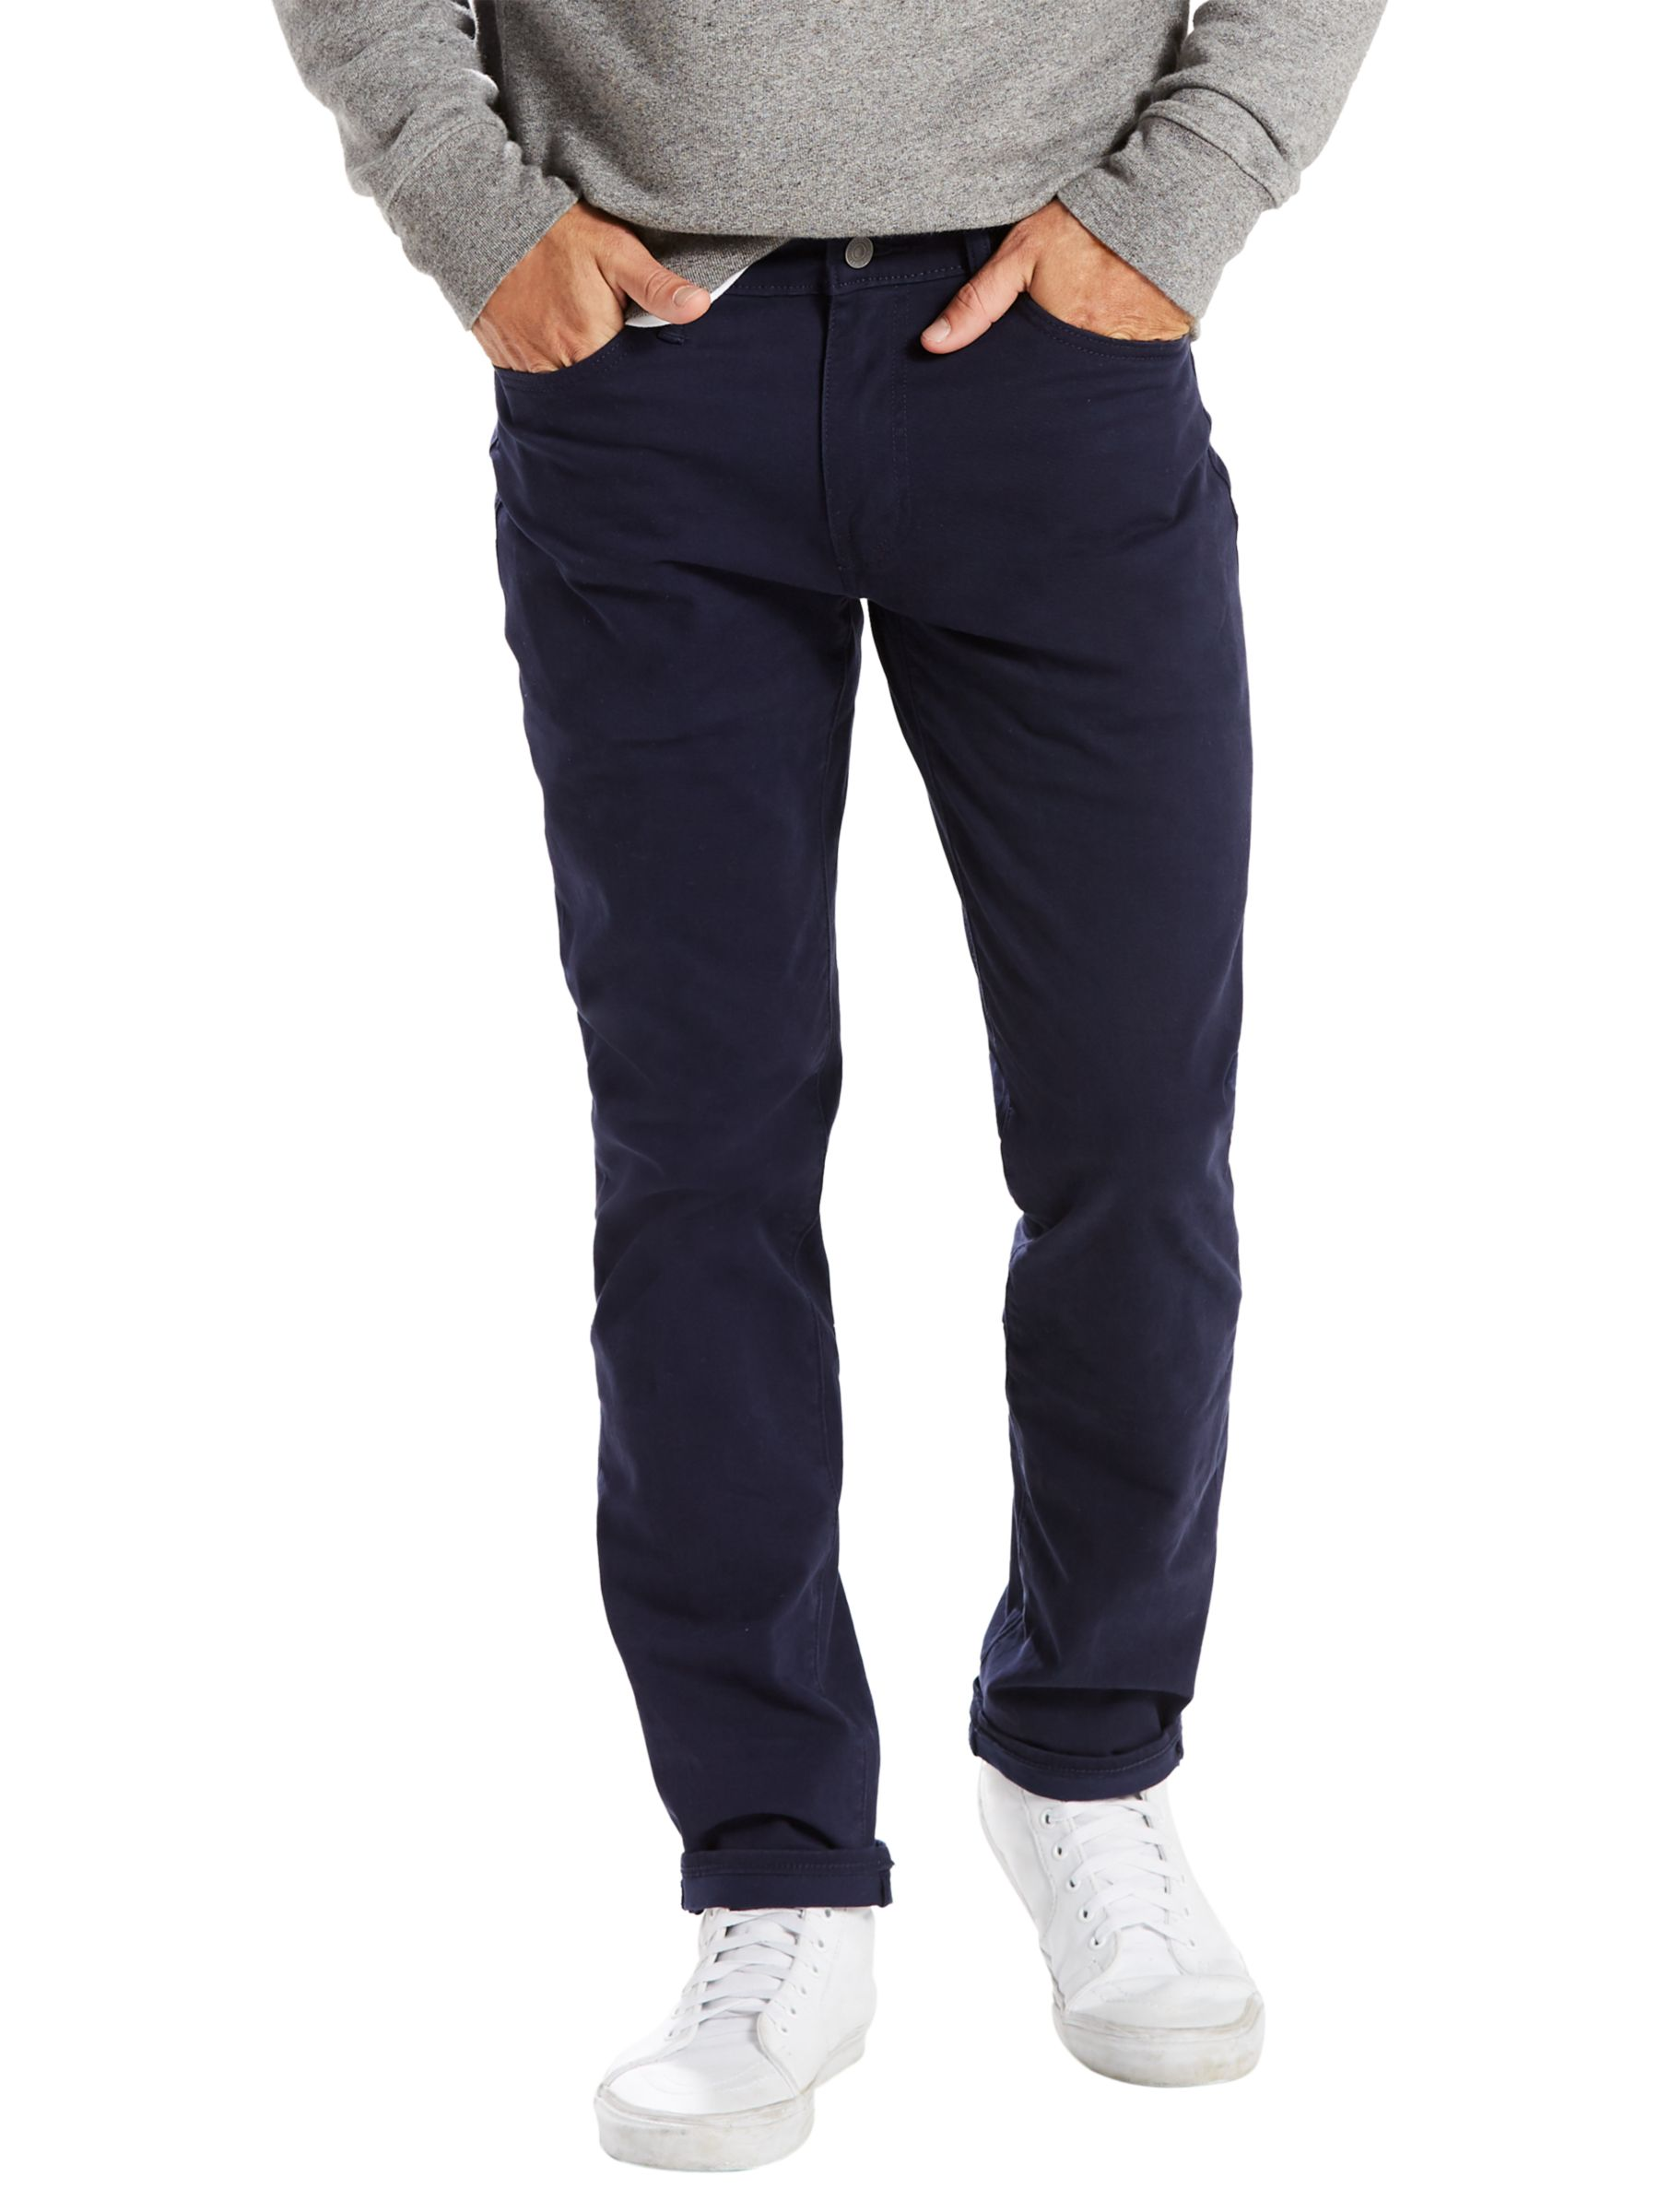 4d200a84efa Levi's 511 Slim Fit Chinos at John Lewis & Partners